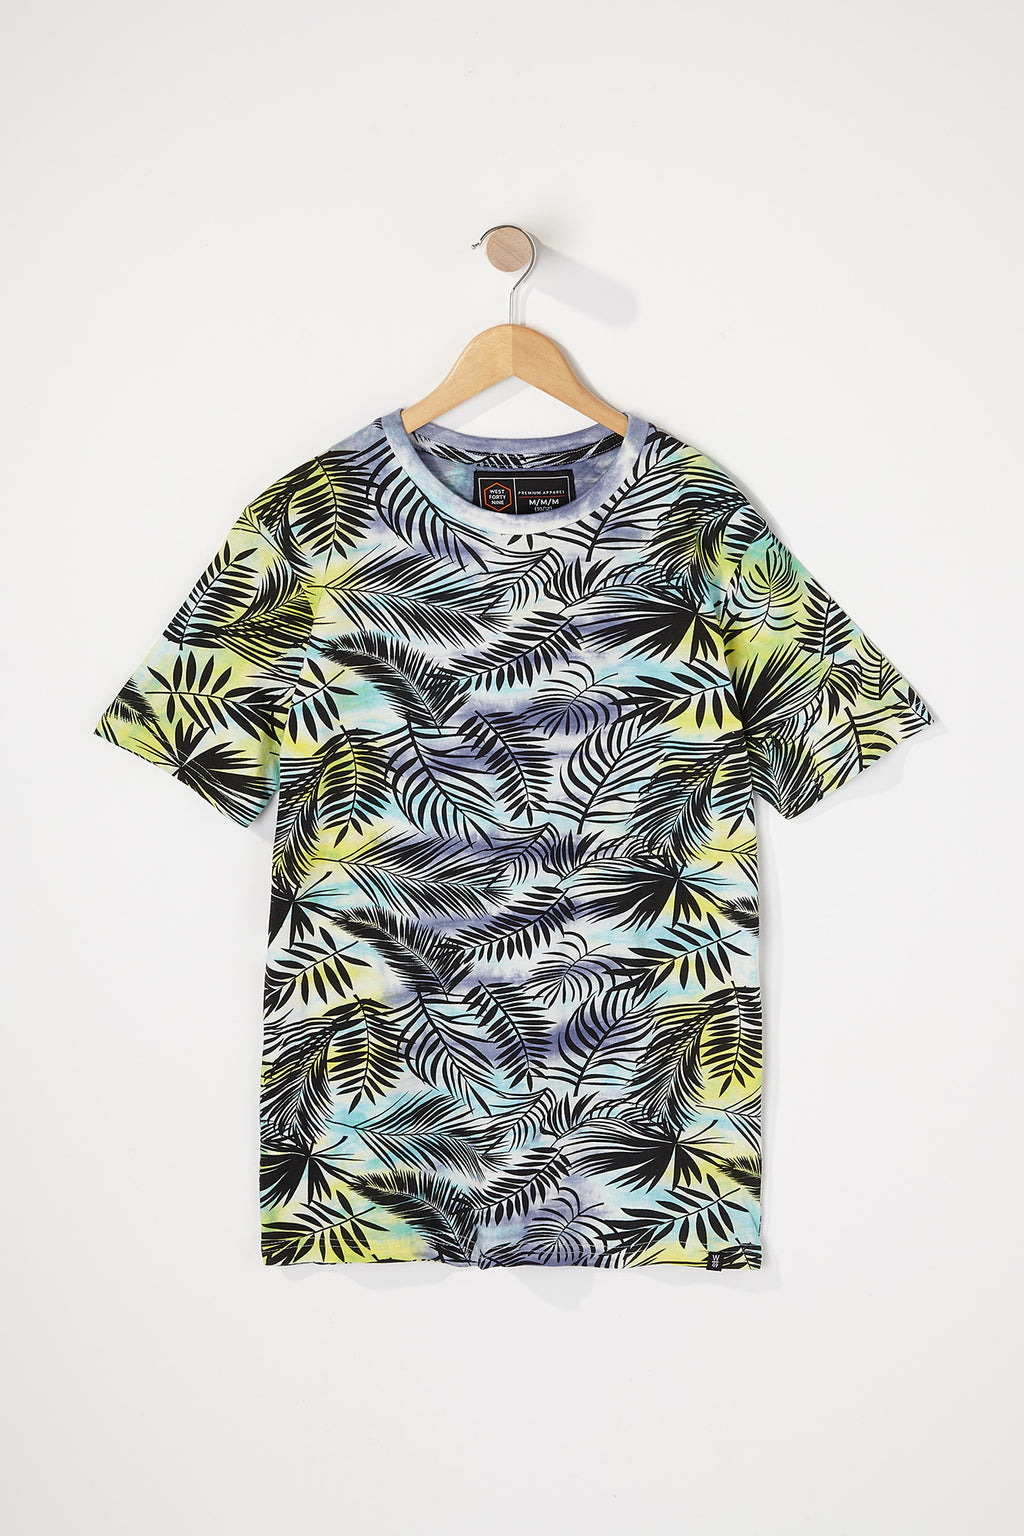 West49 Boys Tie-Dye Palm Tree T-Shirt